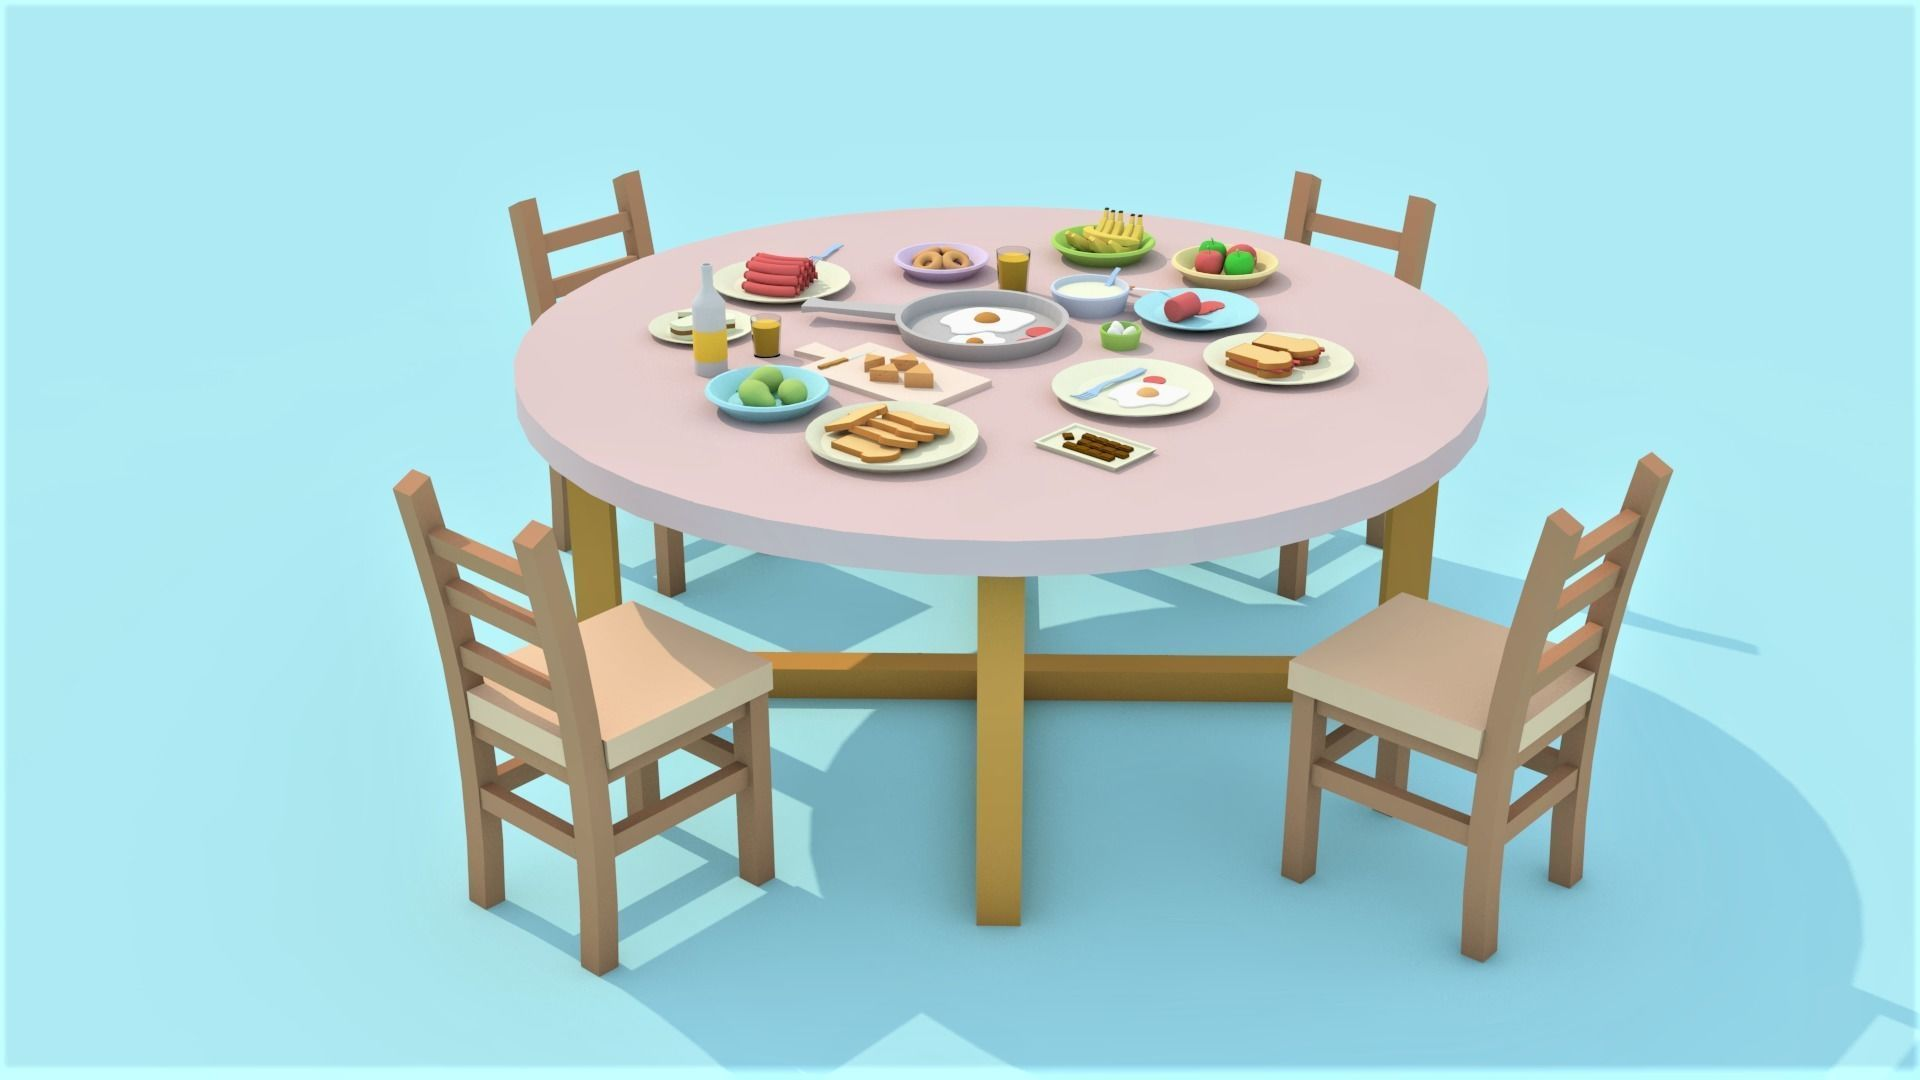 Low-poly dining table with food - cartoon table  5D model